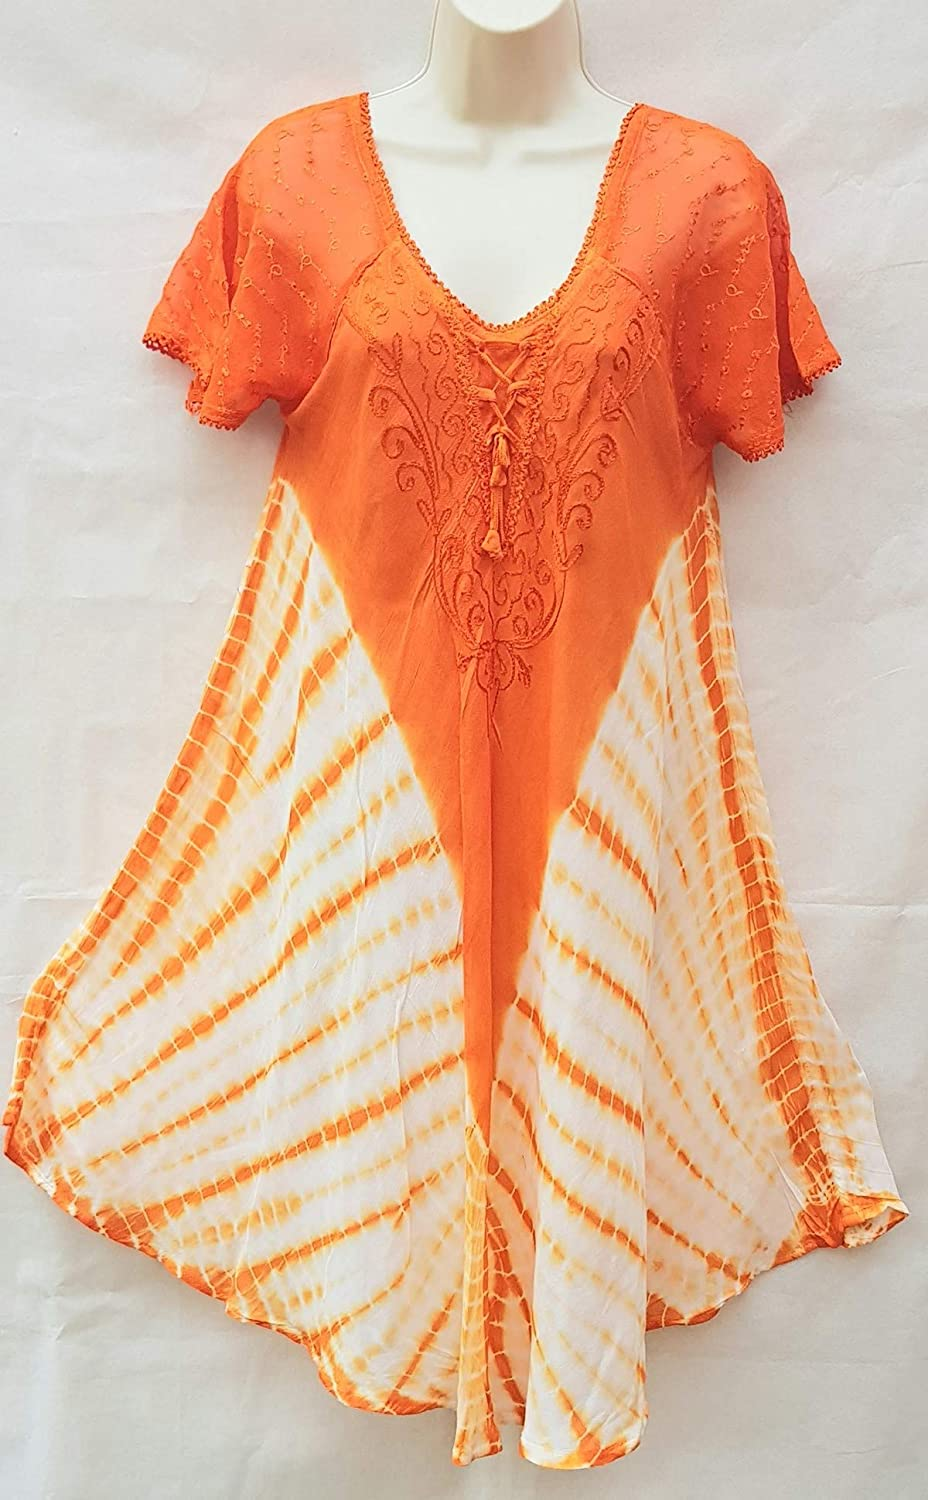 NikSim Collection orange red Embroidered Corset Bodice Long Sleeveless Floral Caftan Dress//beach Cover Up